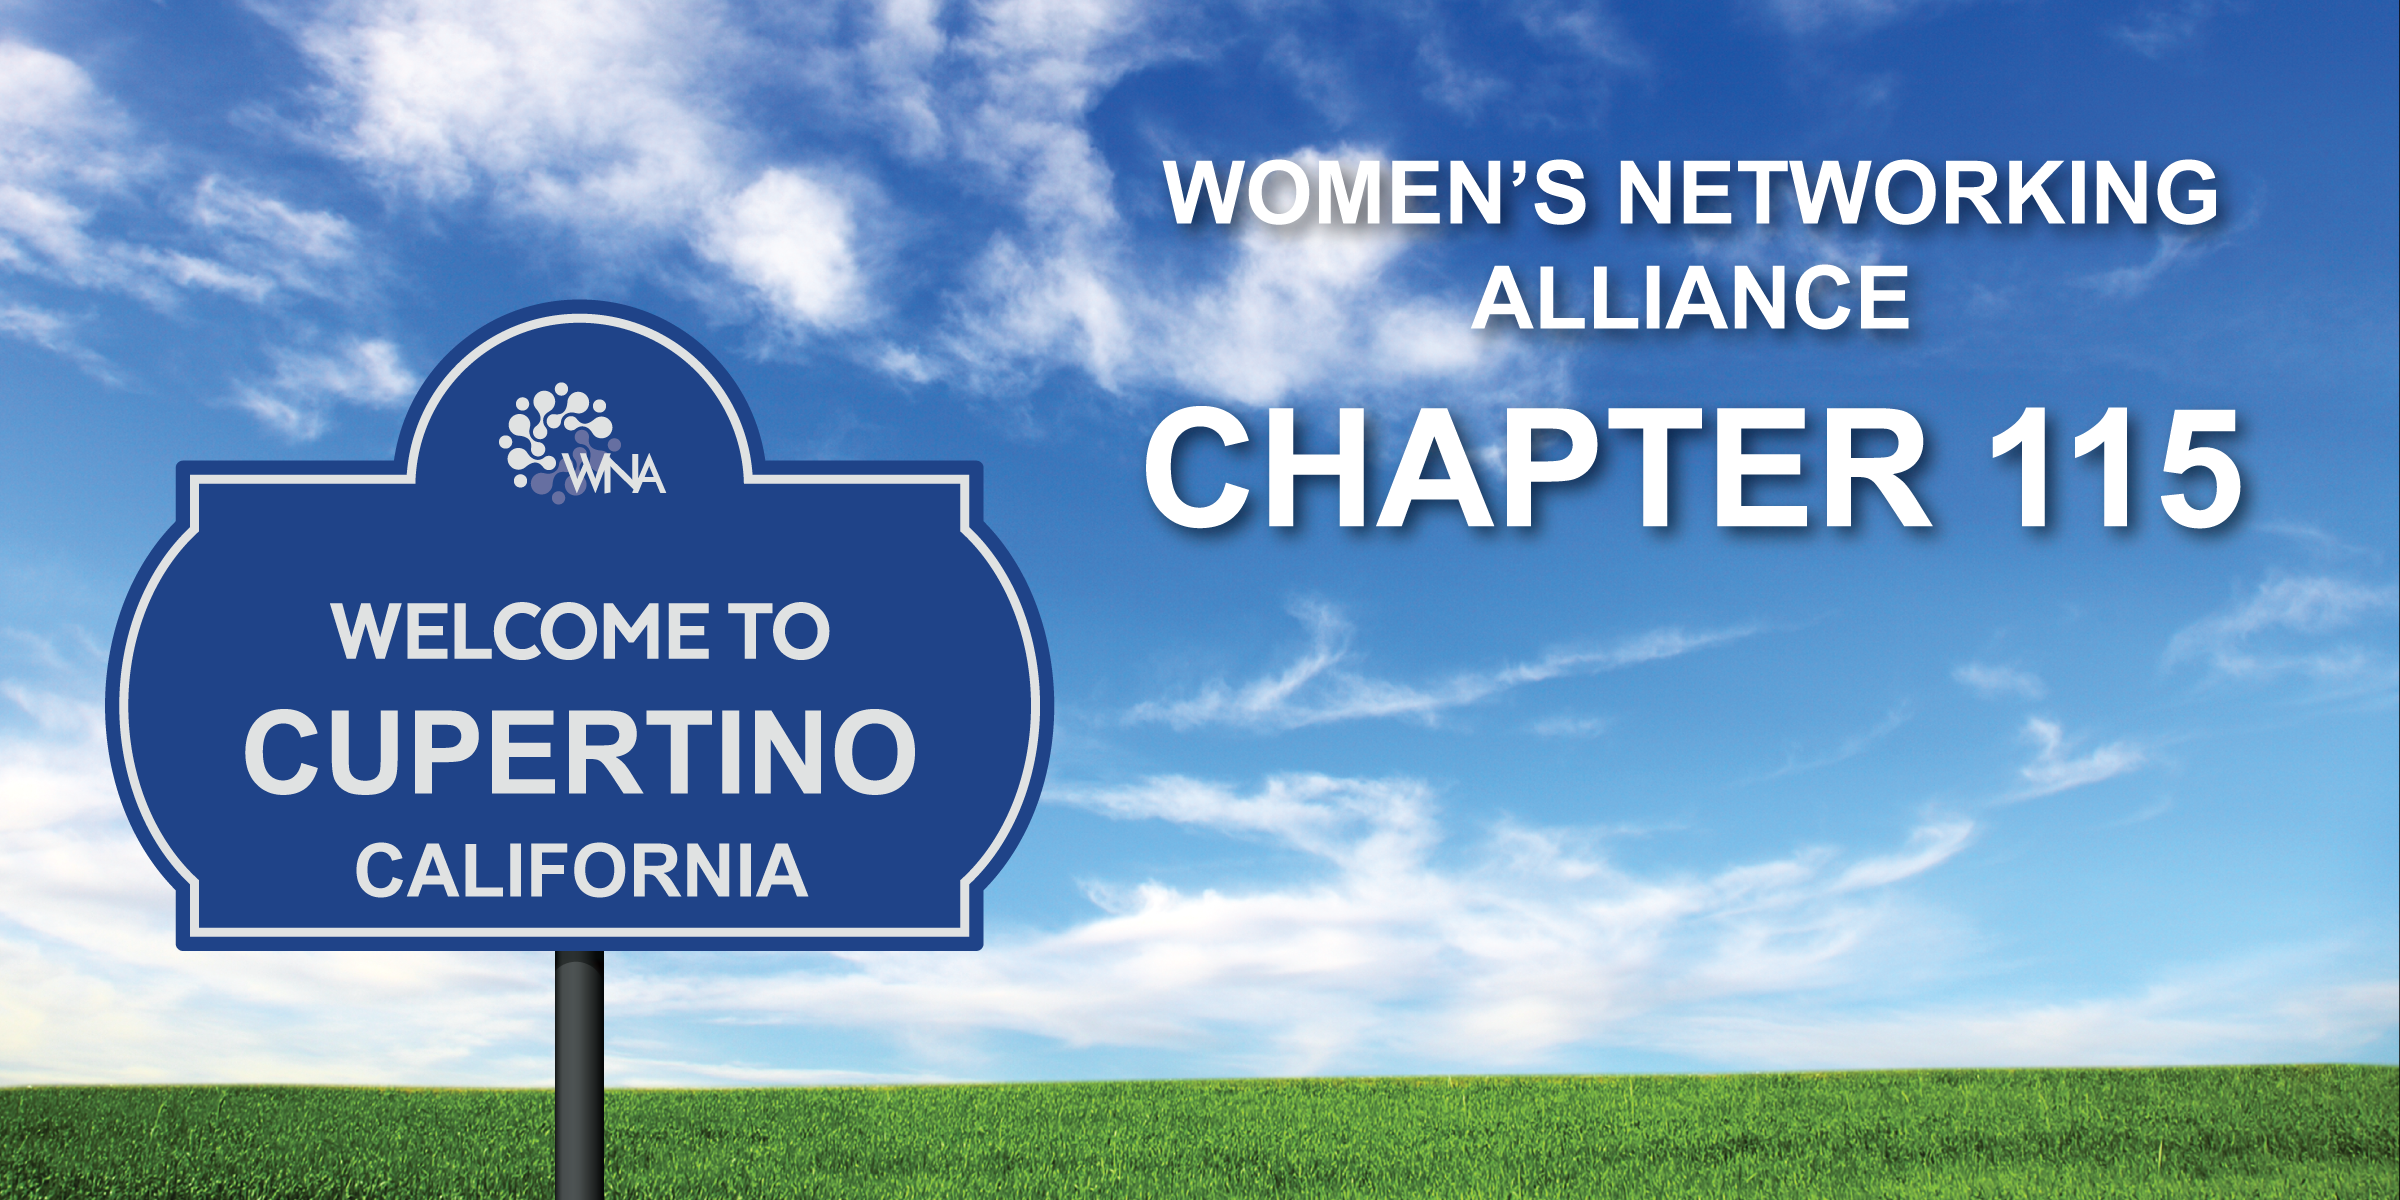 Women's Networking Alliance Ch. 115 Meeting (Cupertino, CA)